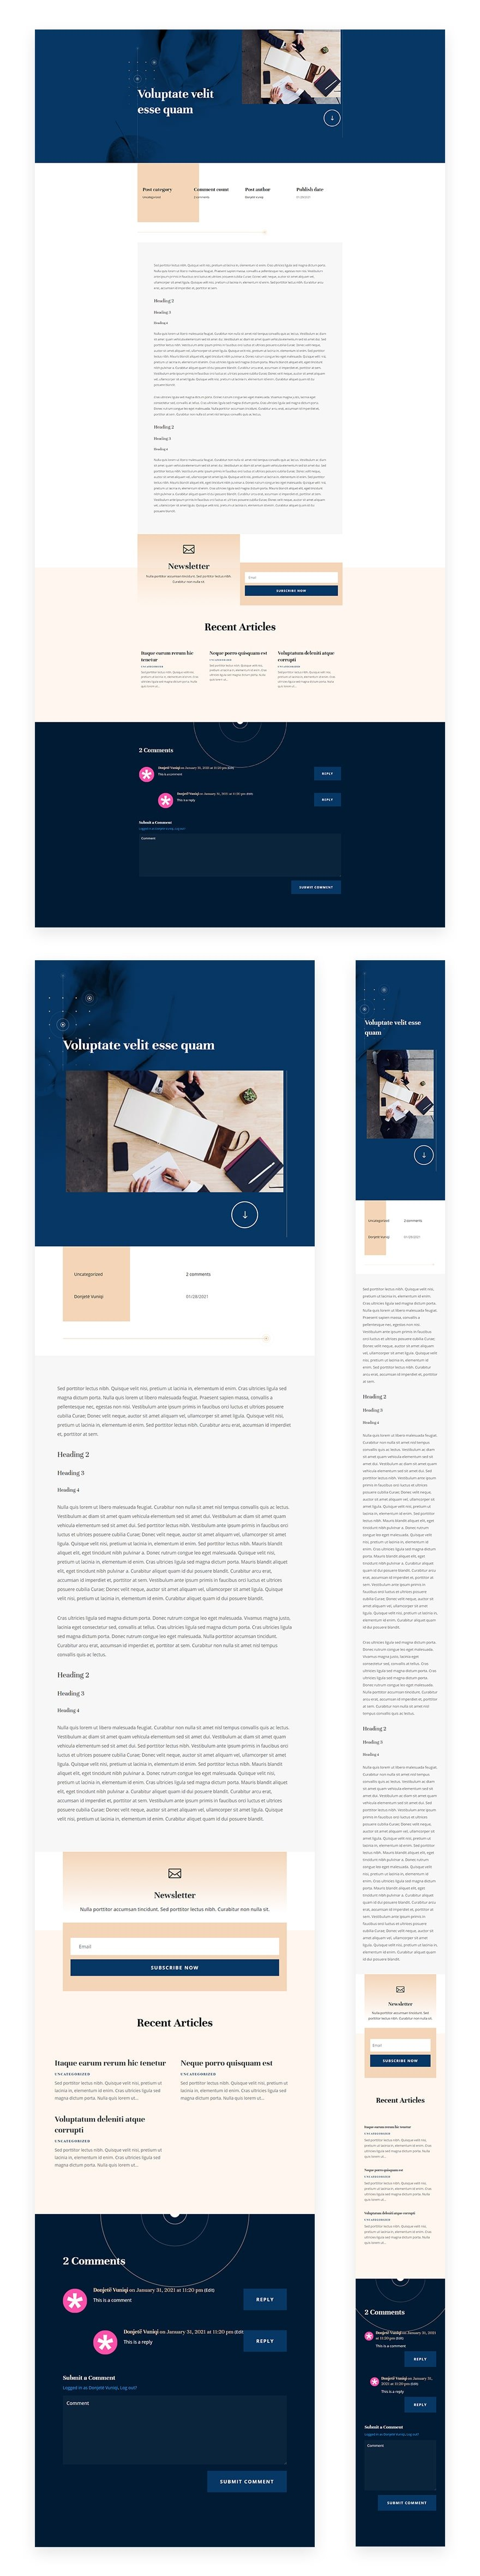 download-a-free-blog-post-template-for-divis-acupuncture-layout-pack Download a FREE Blog Post Template for Divi's Acupuncture Layout Pack